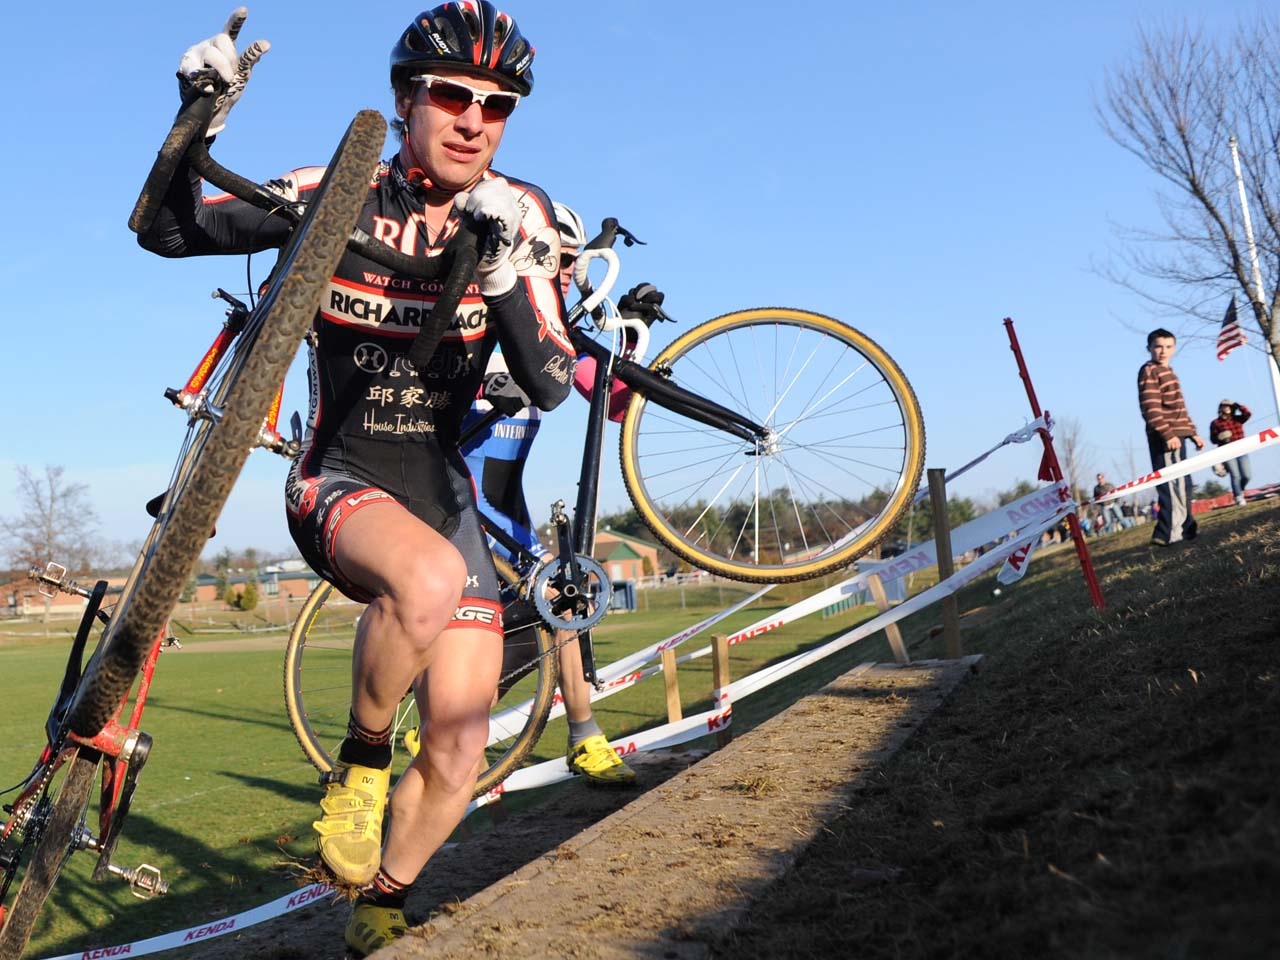 Richard Sachs rider on the run-up? Natalia McKittrick | Pedal Power Photography | 2009